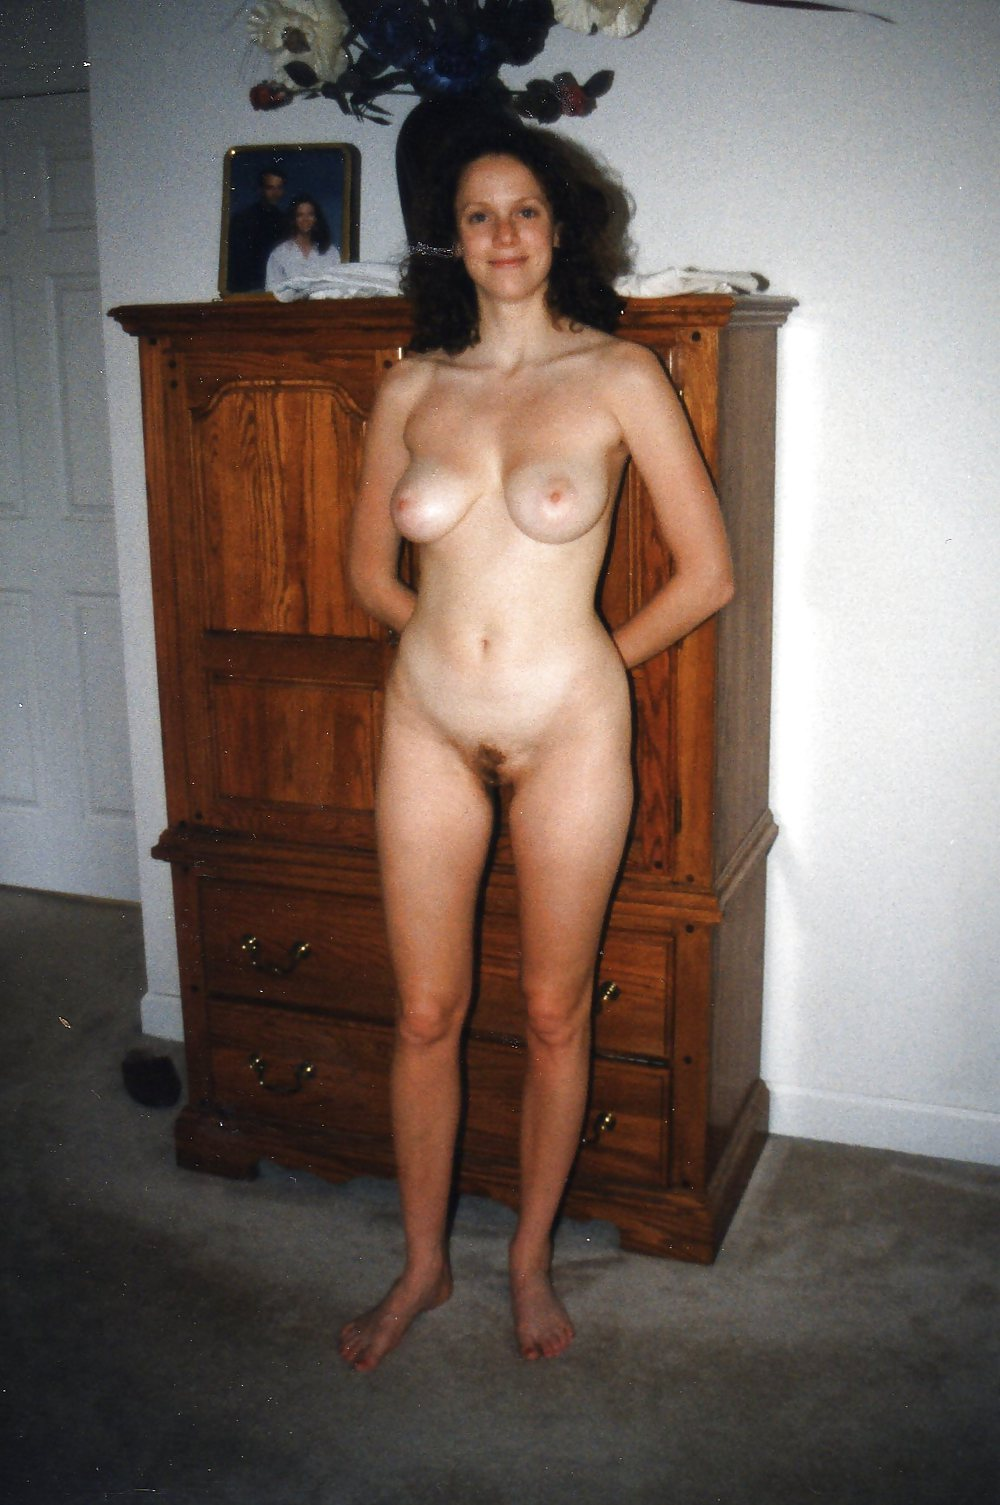 Wife poses nude for hubbys friends